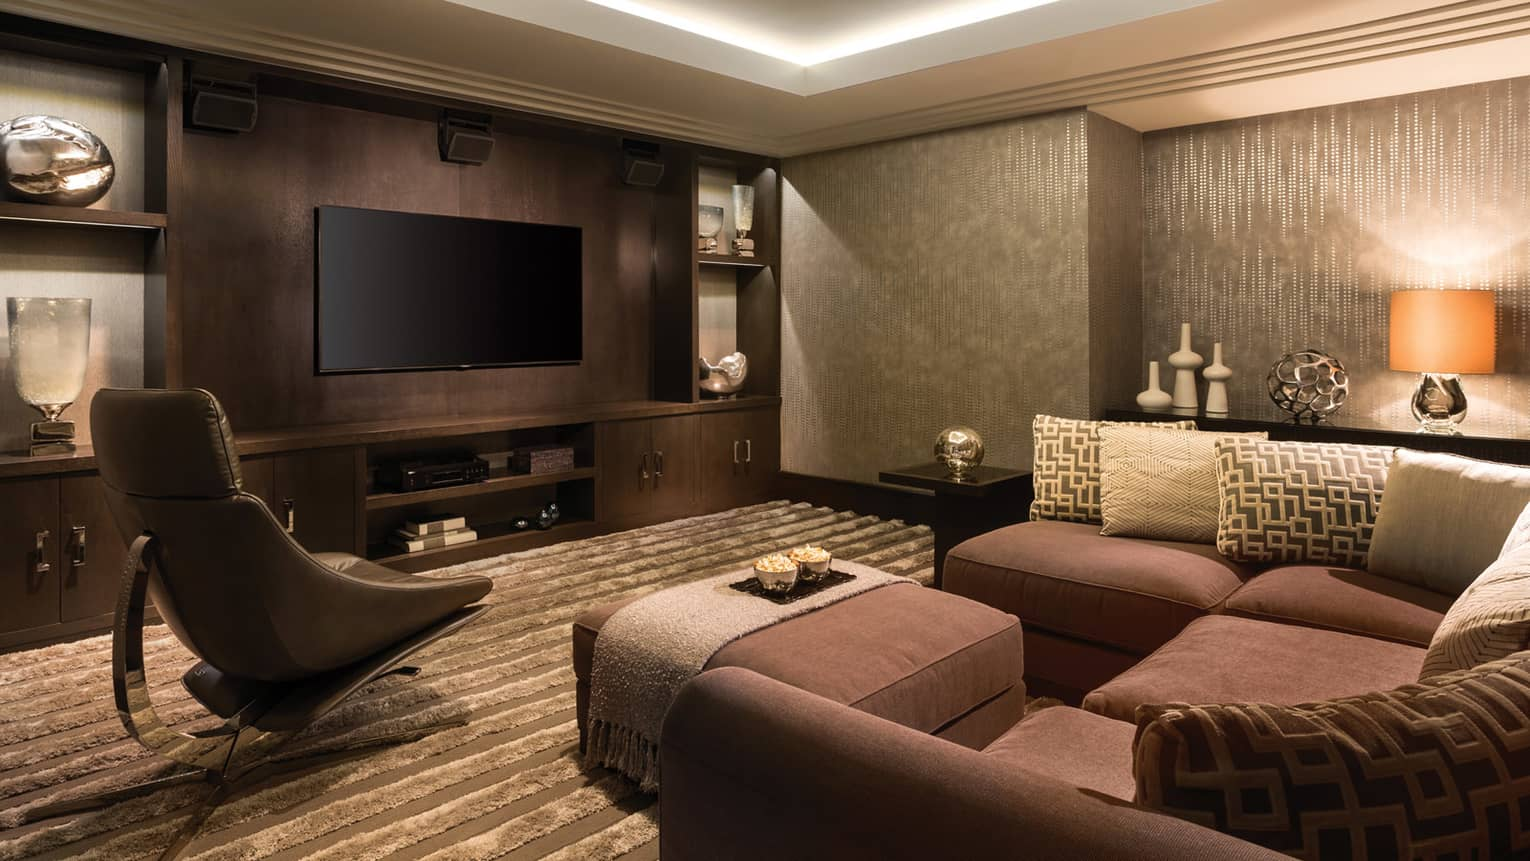 TV on wood panel wall. cabinet, across from L-shaped brown sofa, plush ottoman, modern leather chair